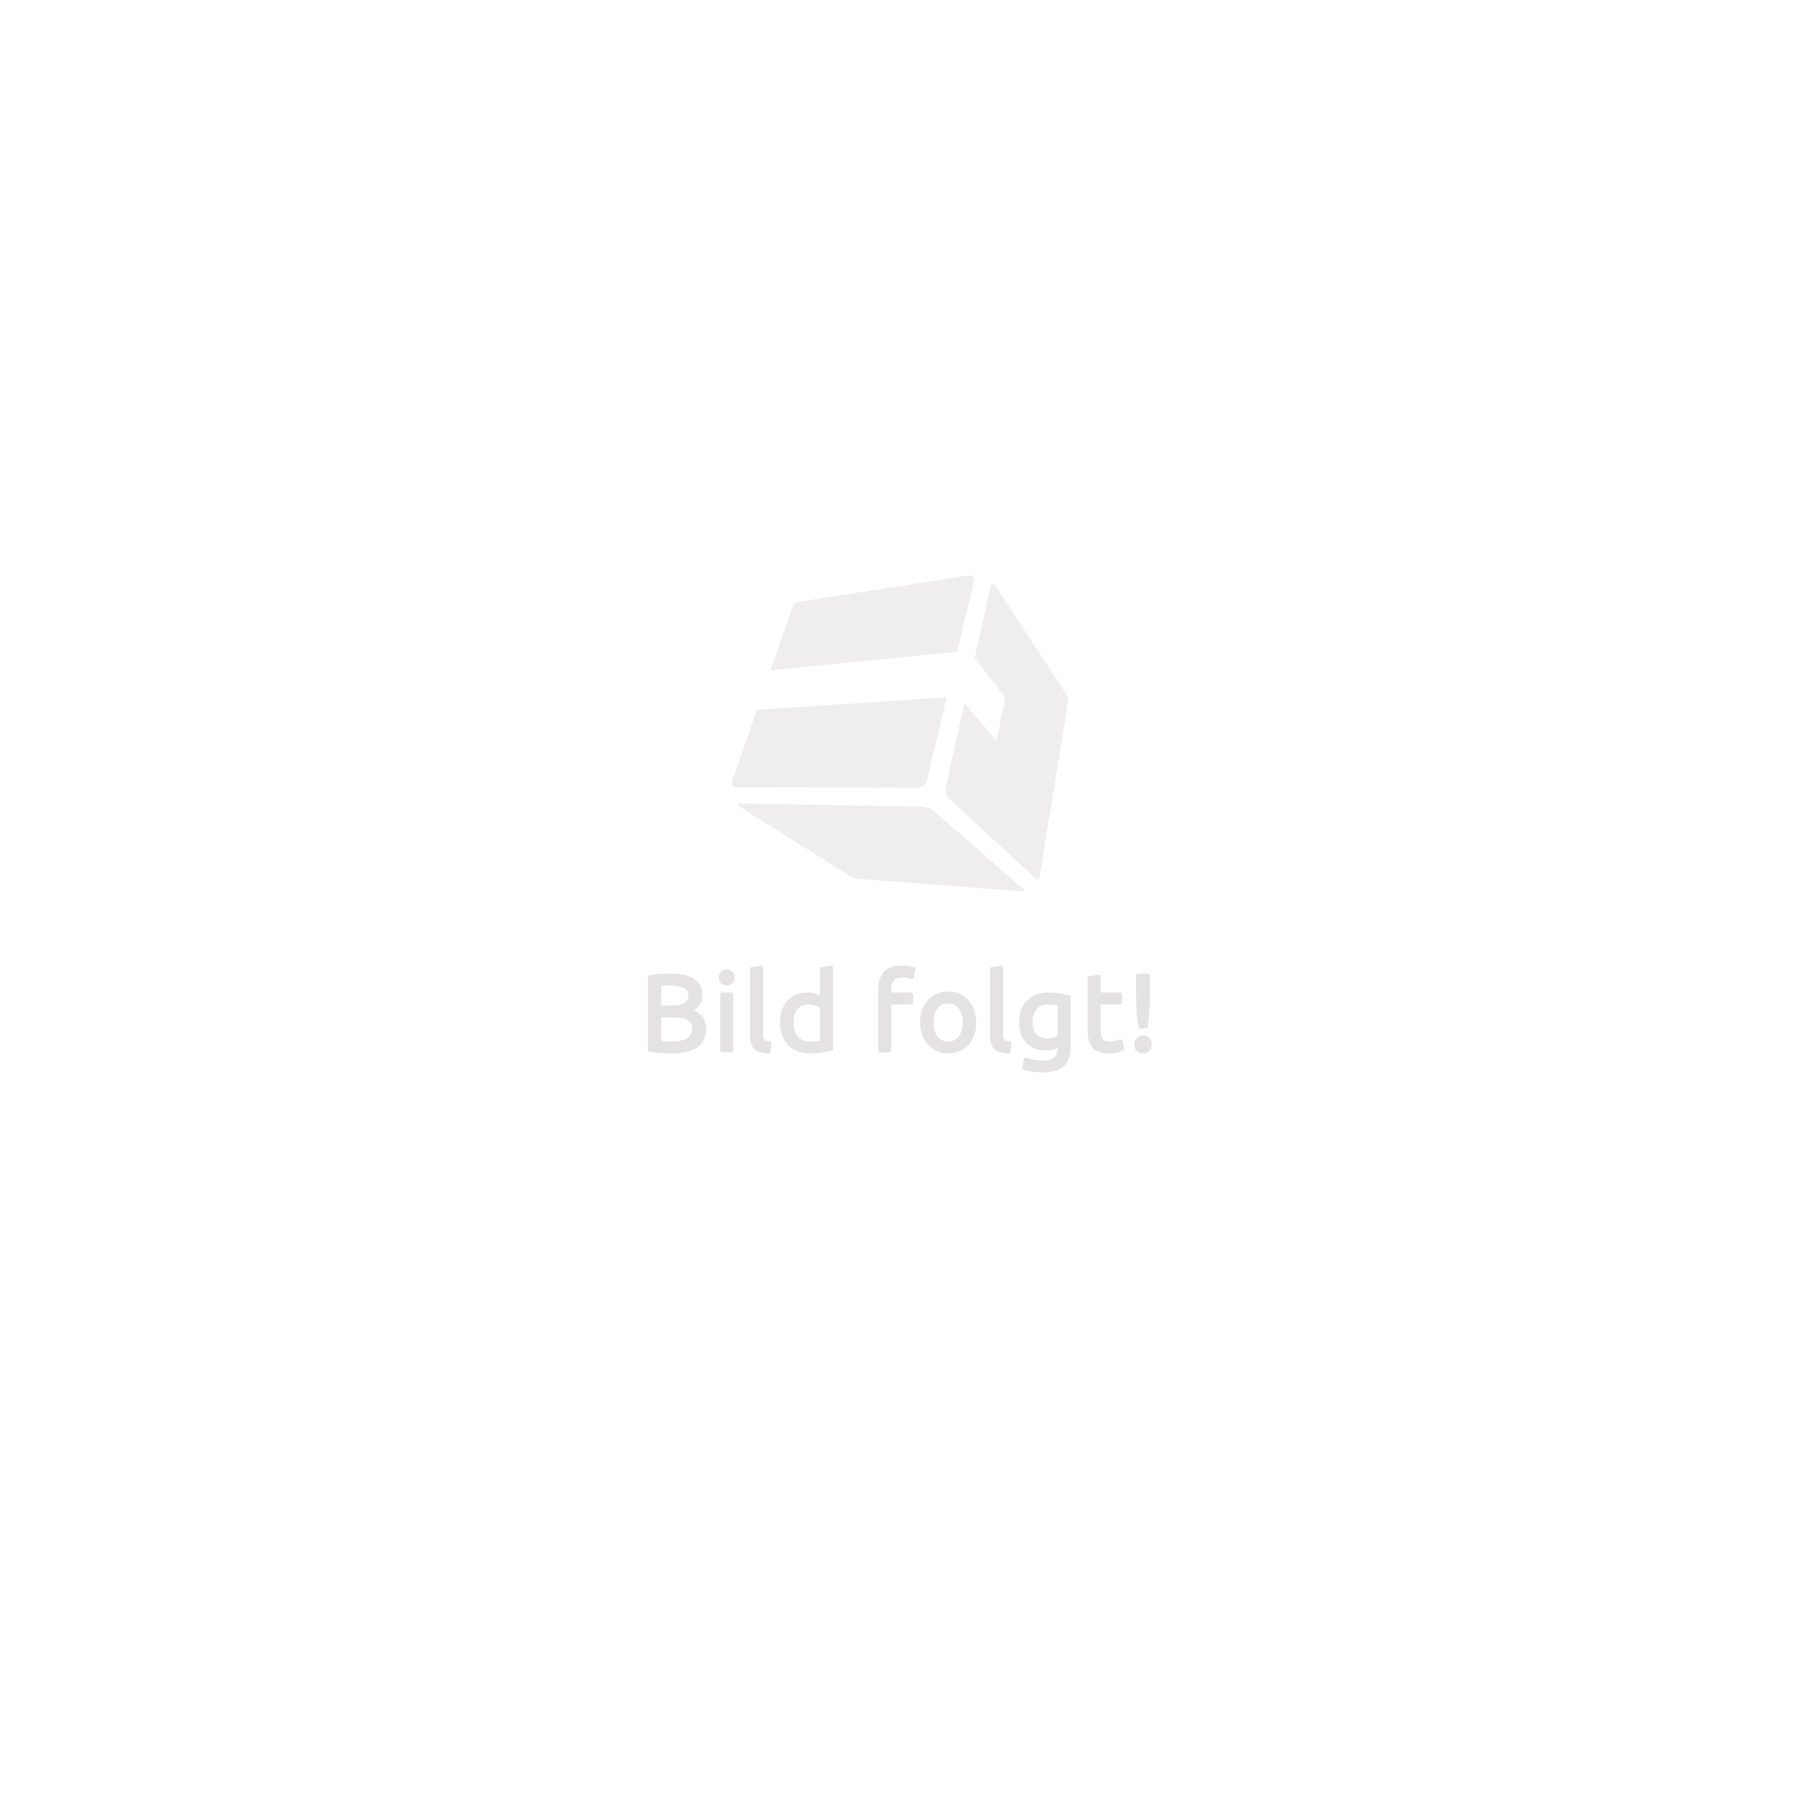 kinderzelt tunnel 200 b lle tasche spielzelt b llebad krabbeltunnel w rfel ebay. Black Bedroom Furniture Sets. Home Design Ideas